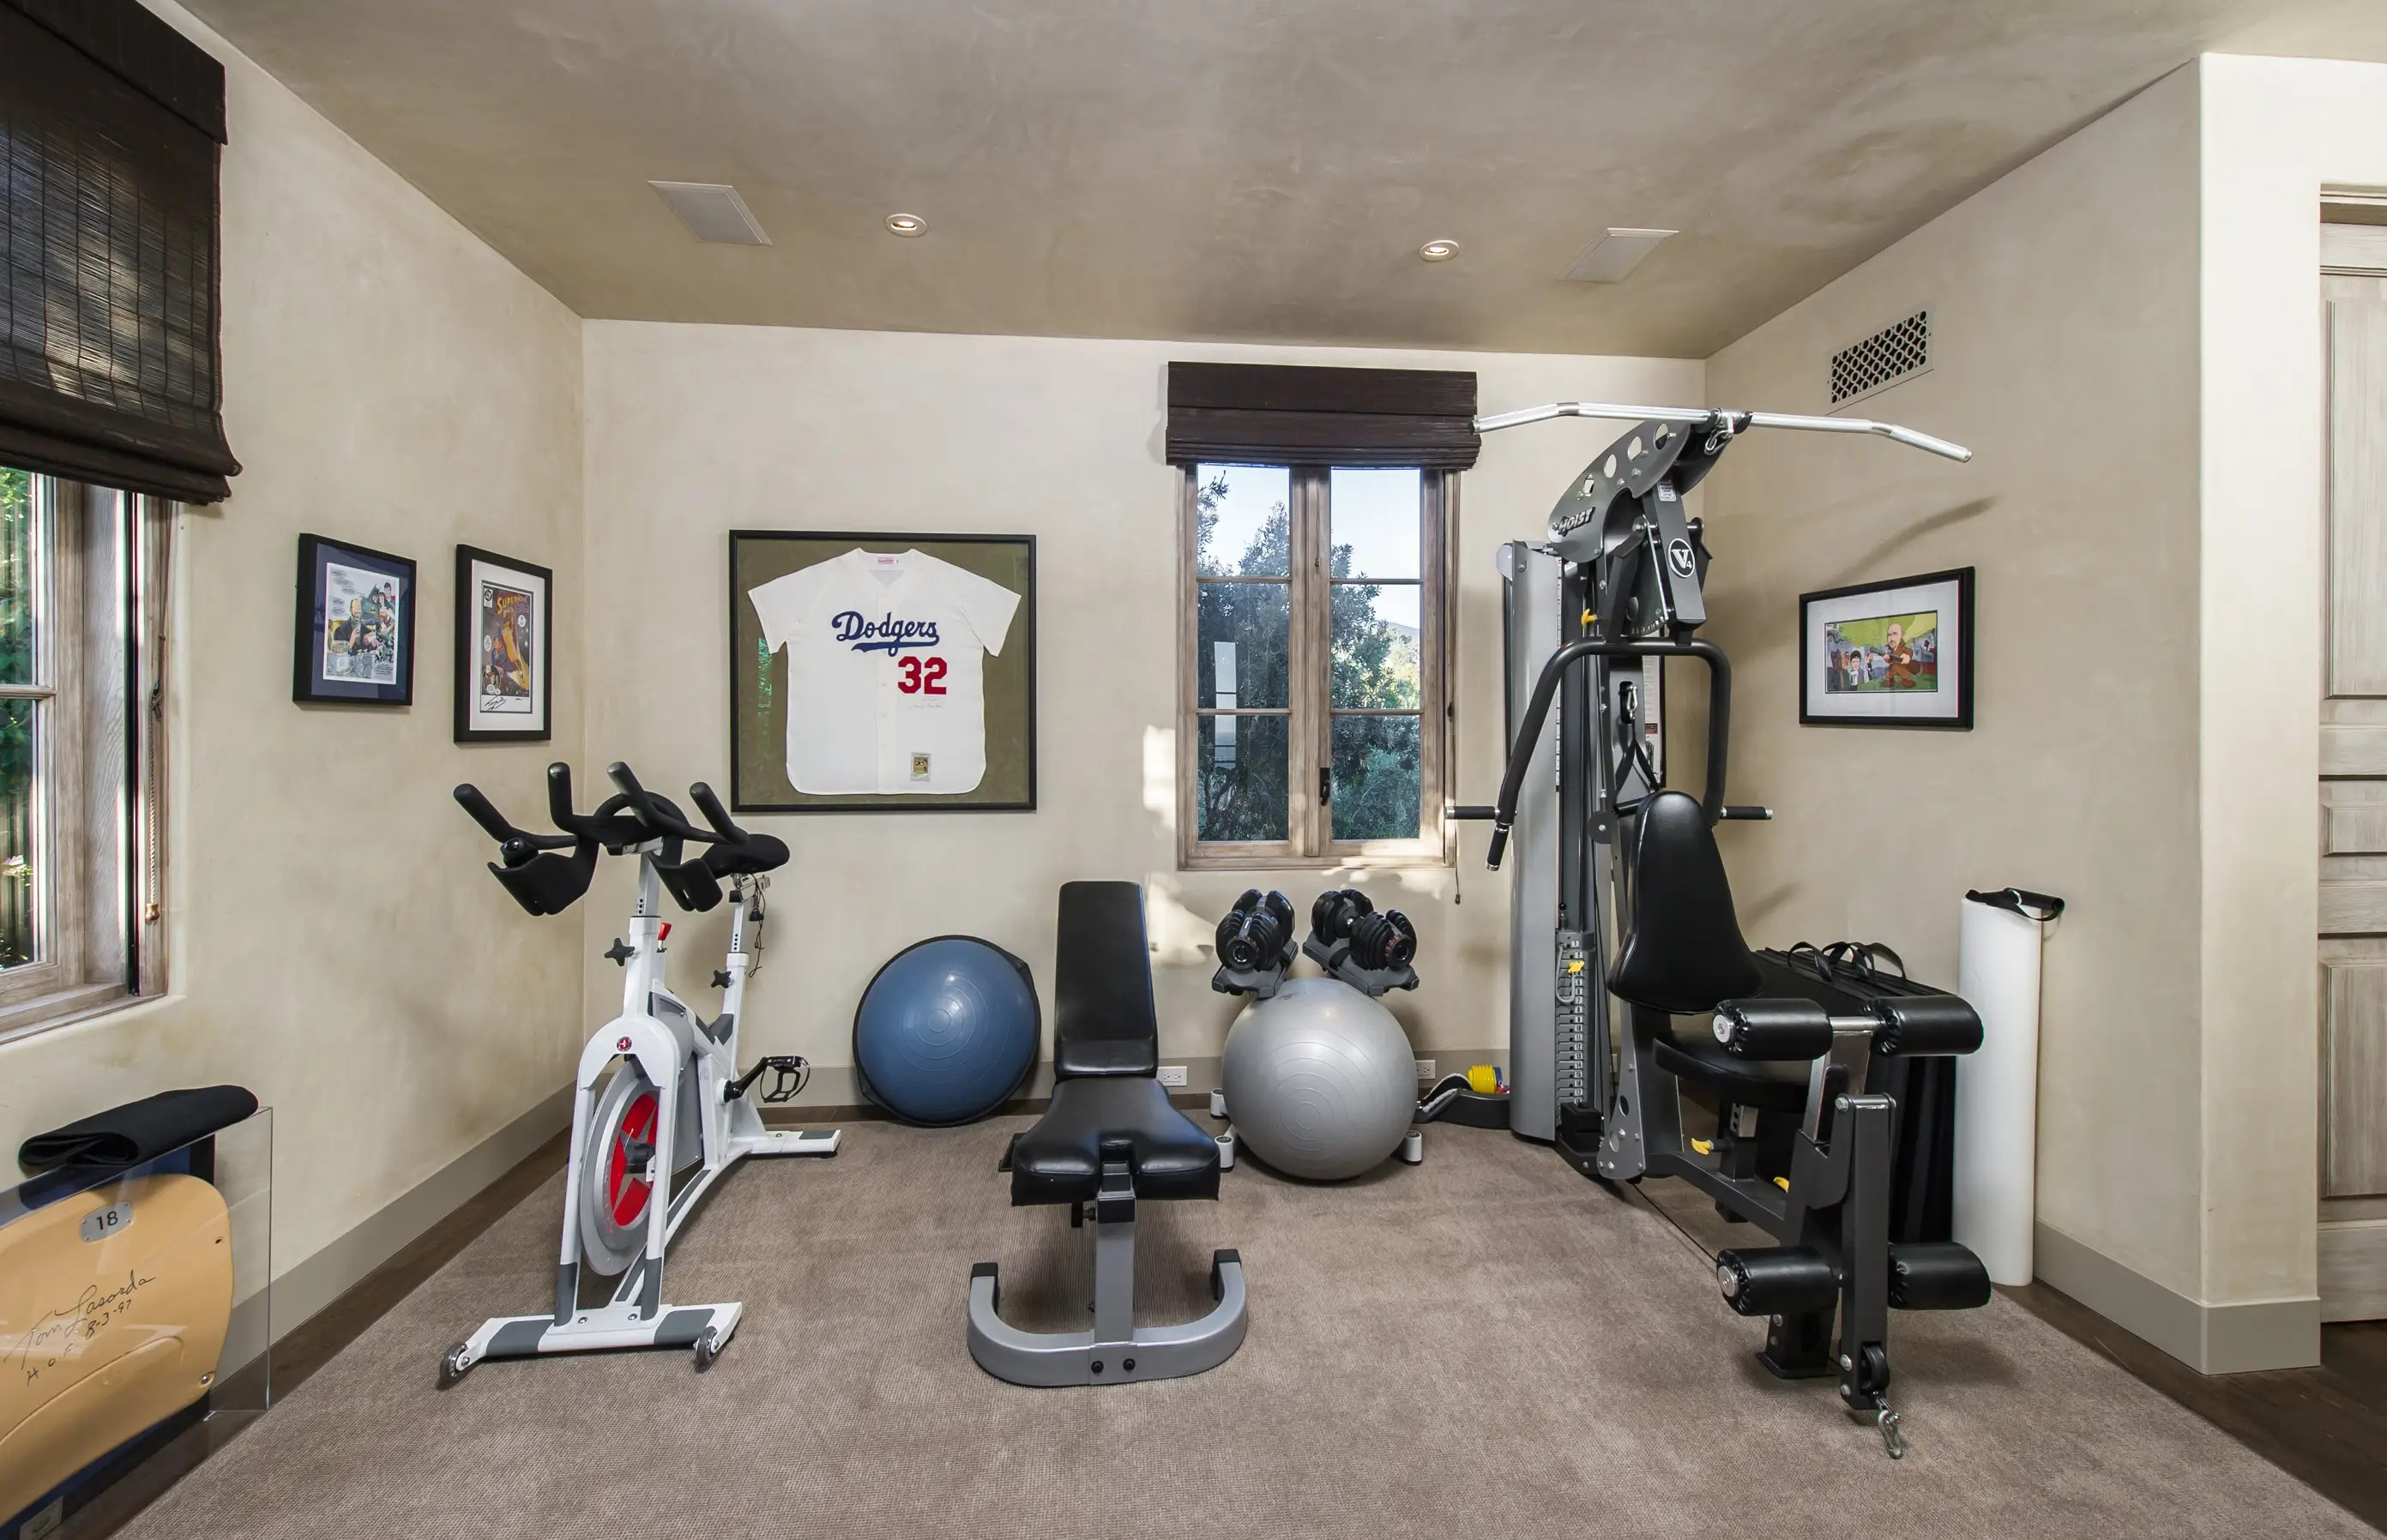 Here's the gym, in case you get sick of running on your 6 acres.